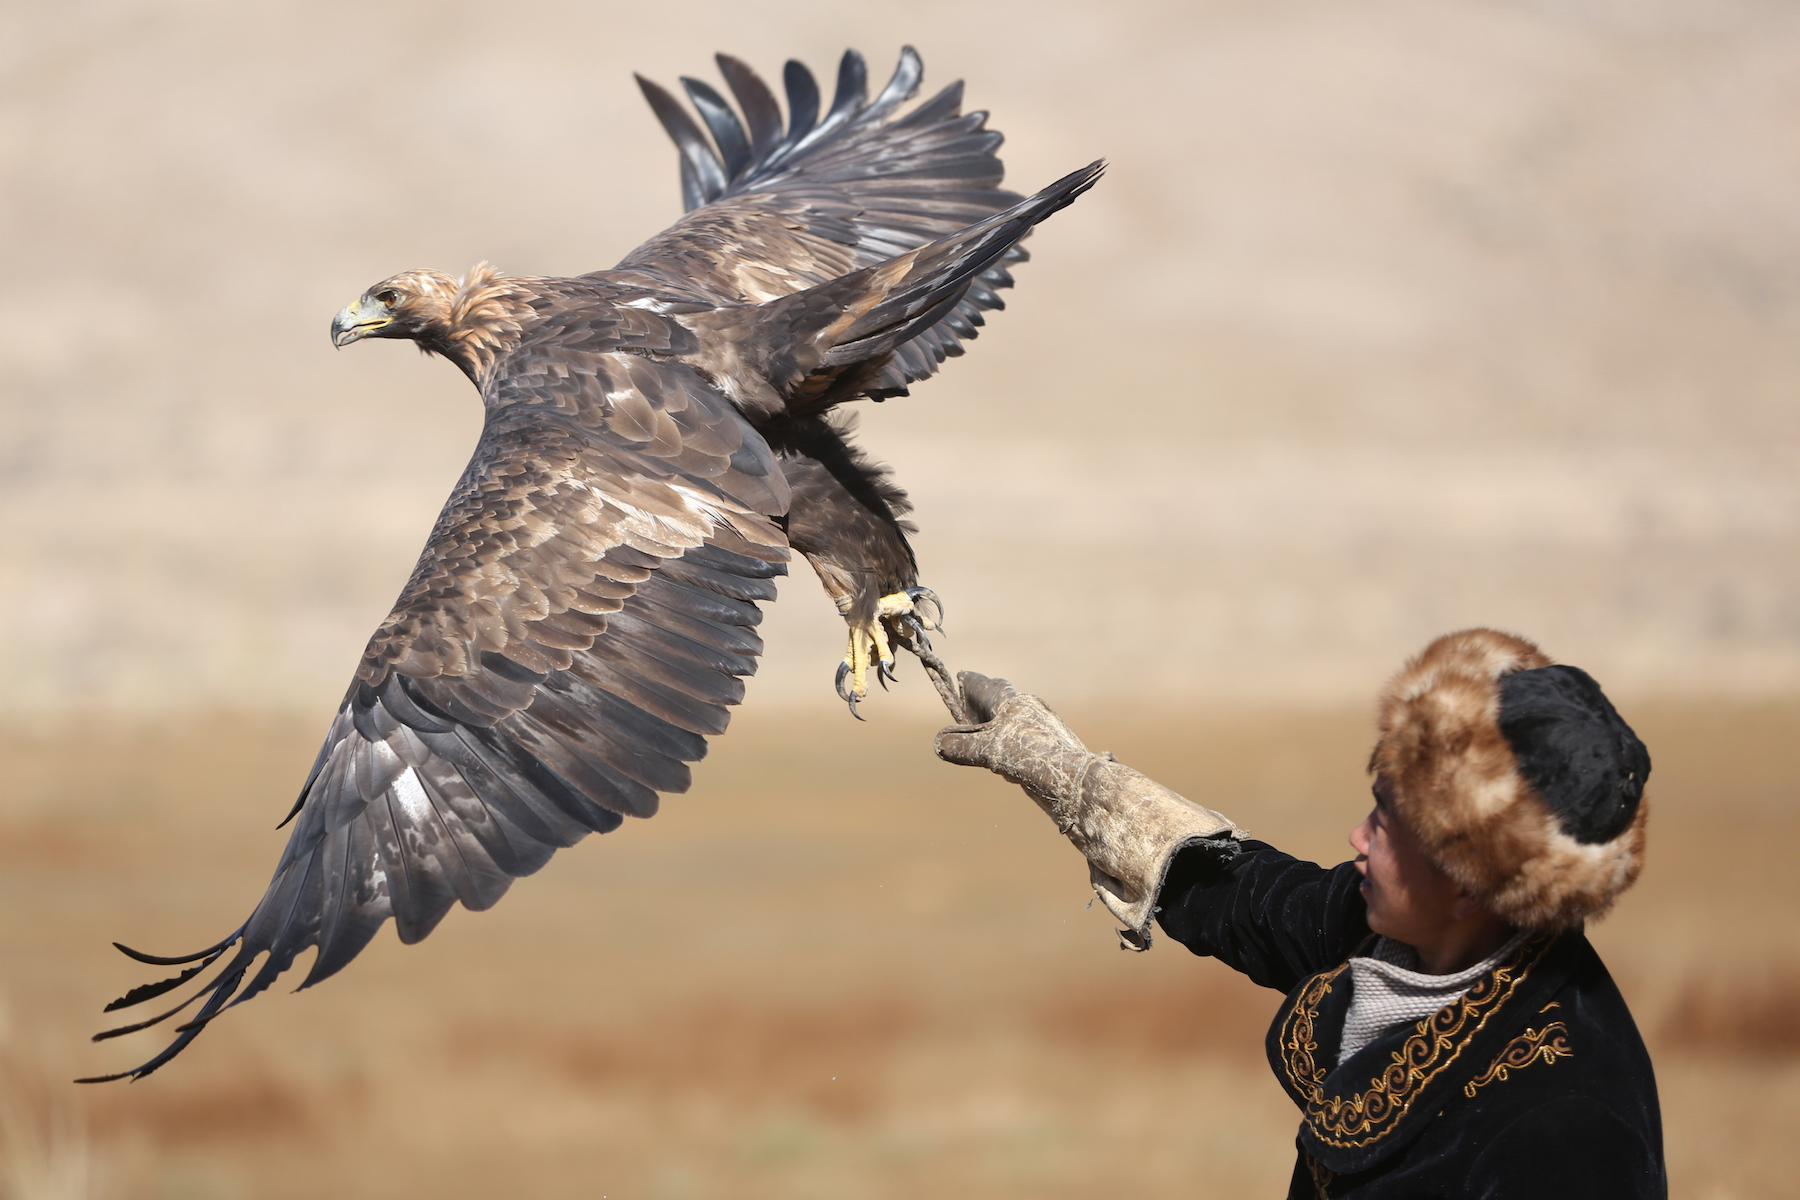 Golden eagles and falcons have been expertly trained for generations in Kyrgyzstan